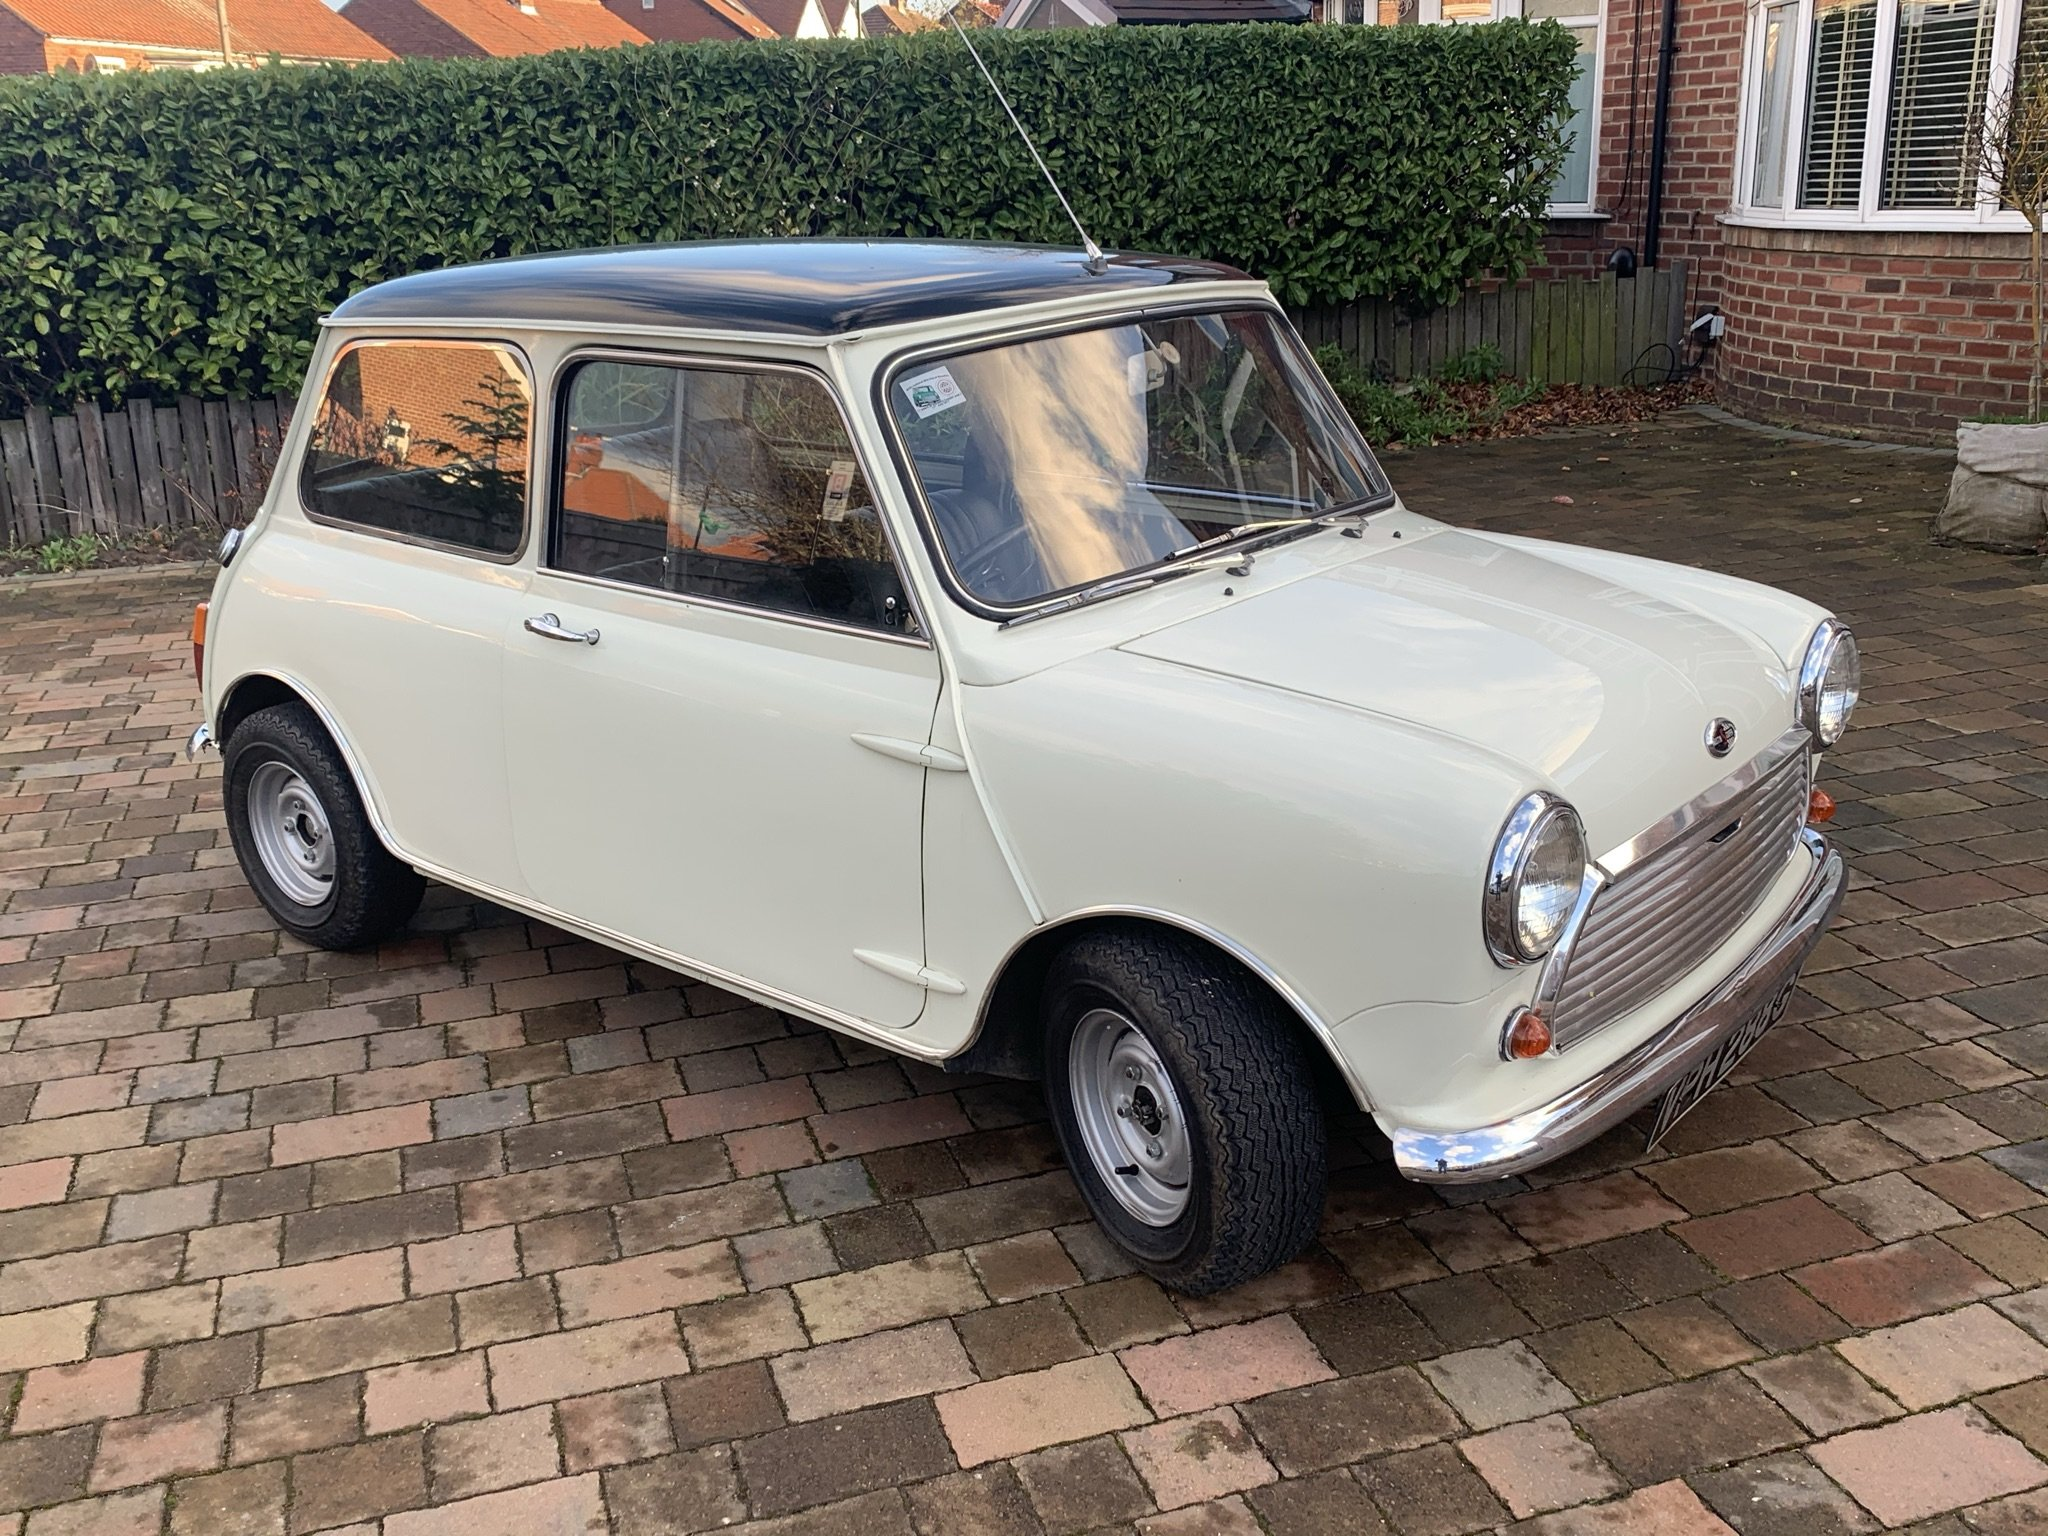 1968 MK 2 Cooper S 1275cc Genuine Heritage Certificated car.